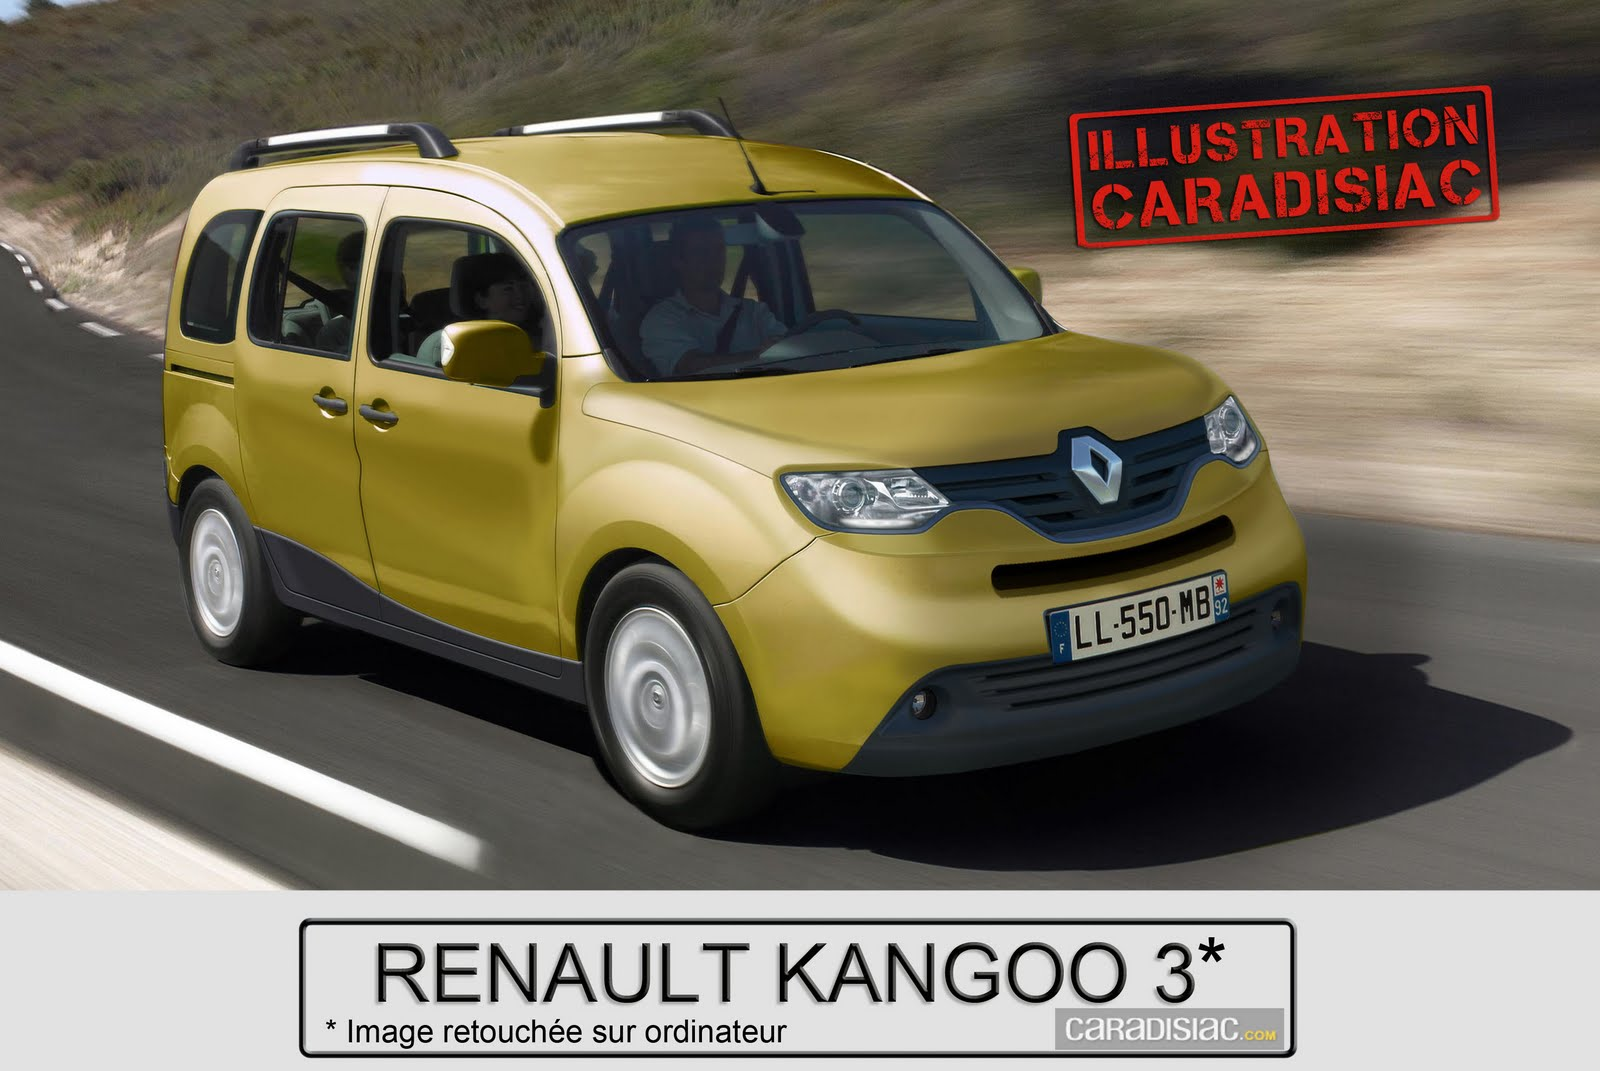 medium resolution of  renault kangoo 2015 greek renault news